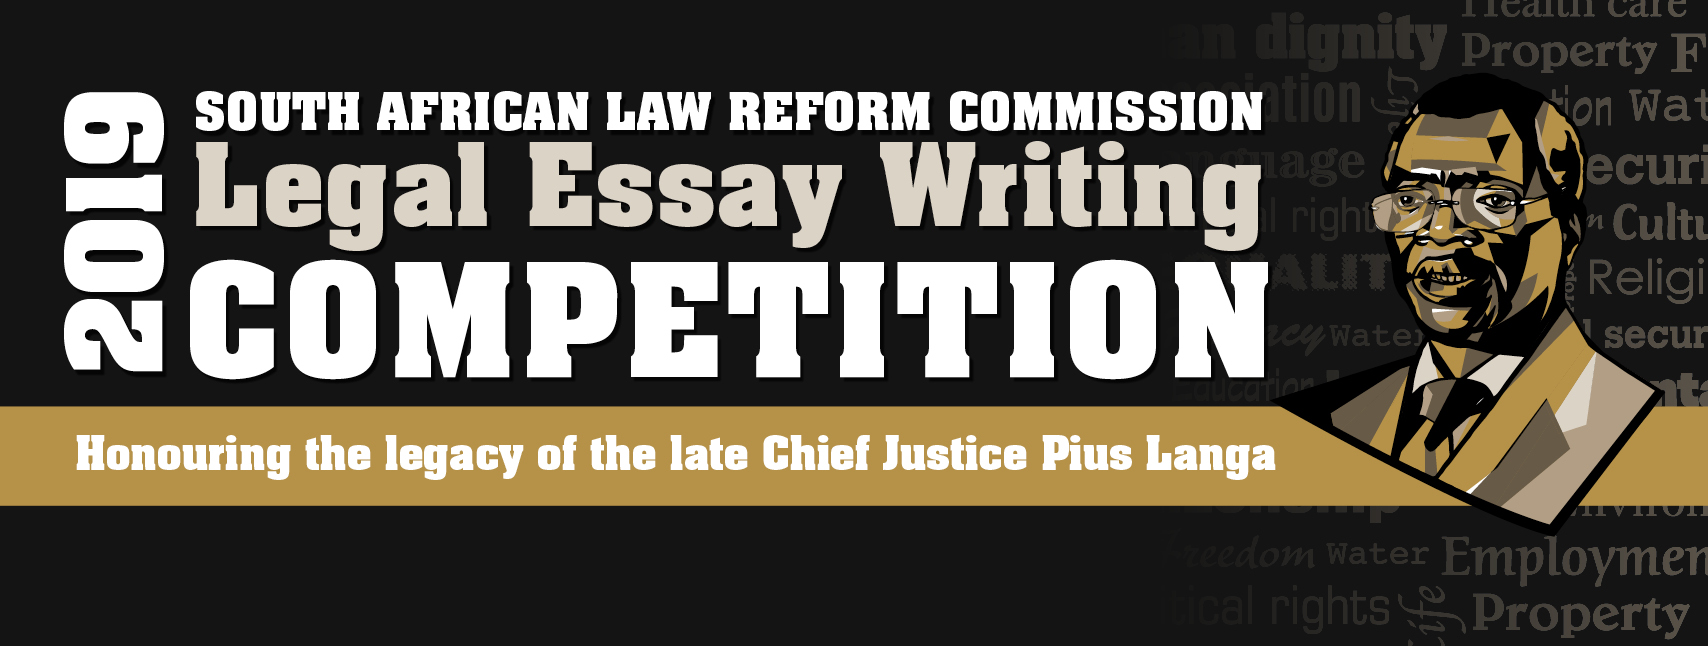 2019 South African Law Reform Commission Legal Essay Writing Competition now open!